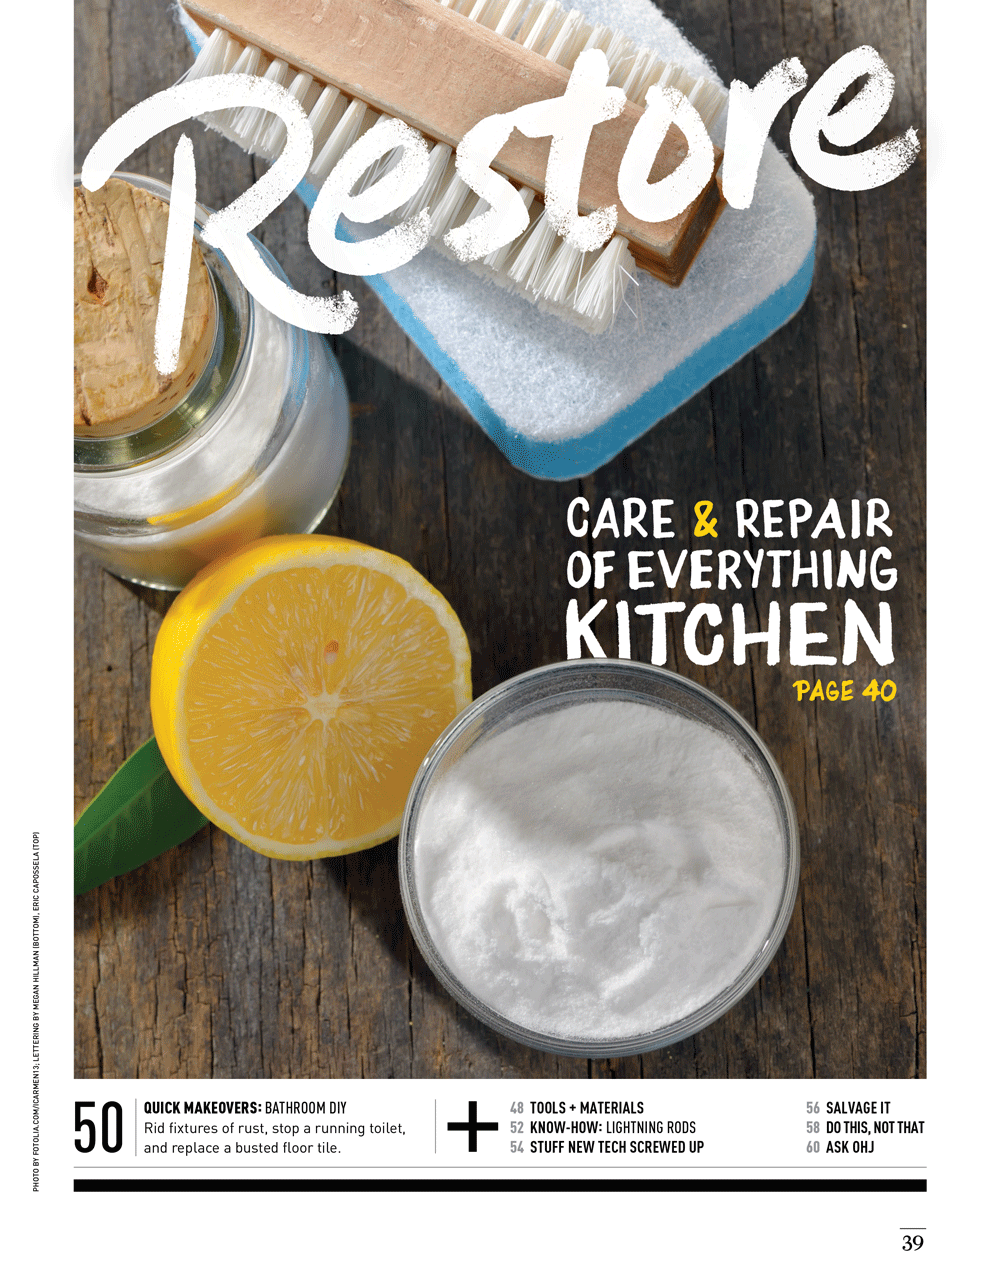 Kitchen Care & Repair by Megan Hillman